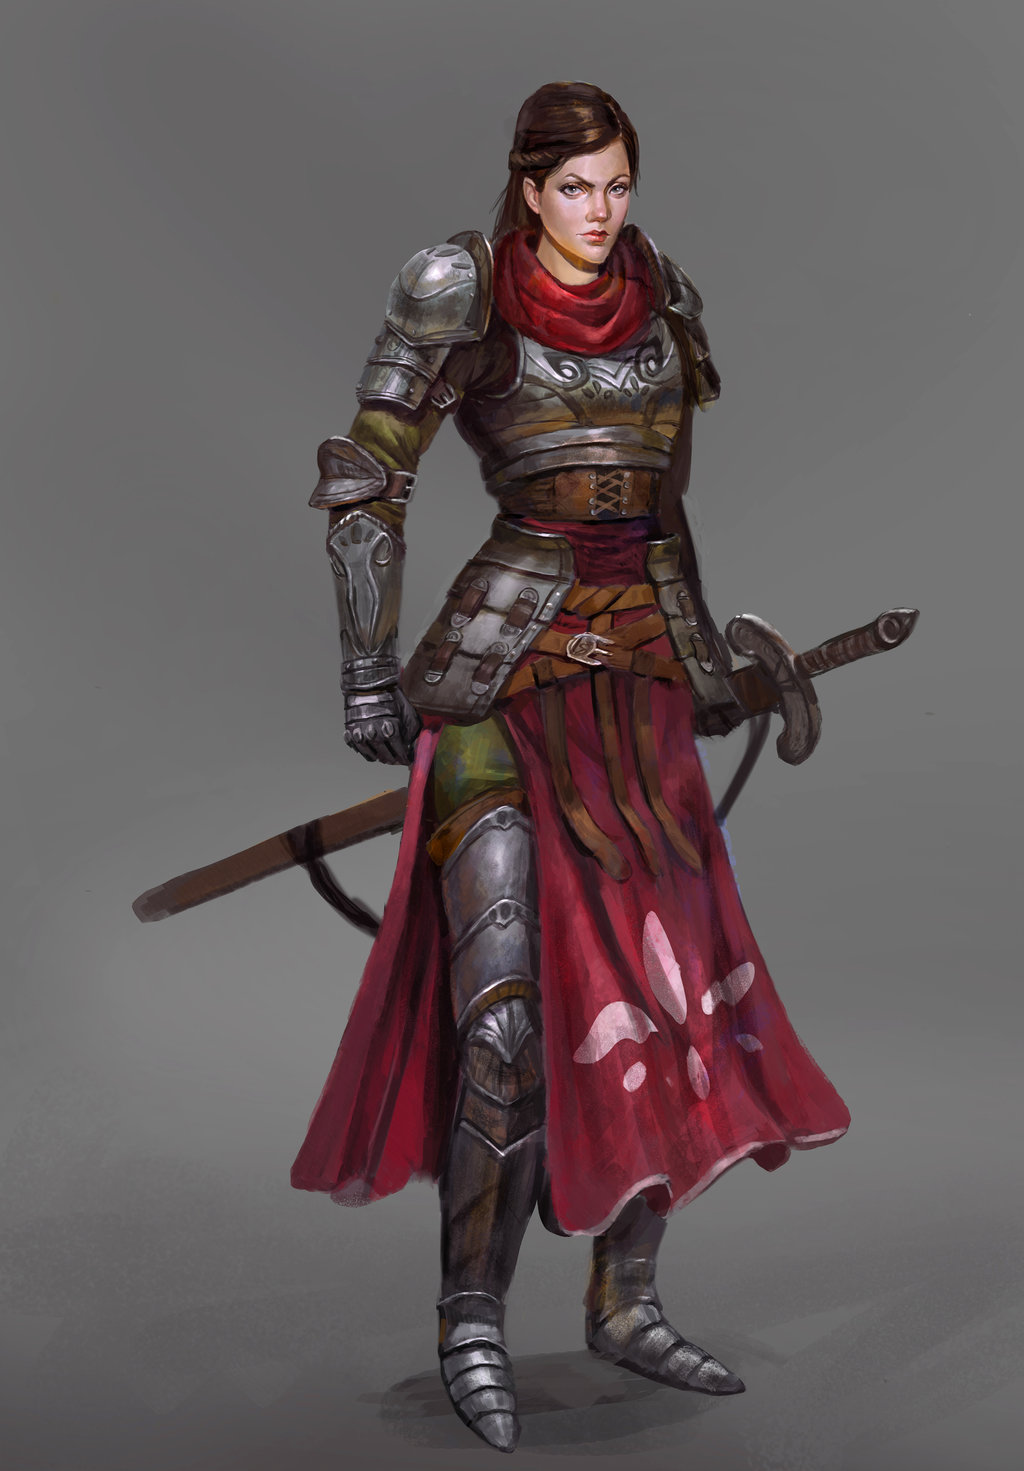 female_knight_by_timkongart-d8qomfy